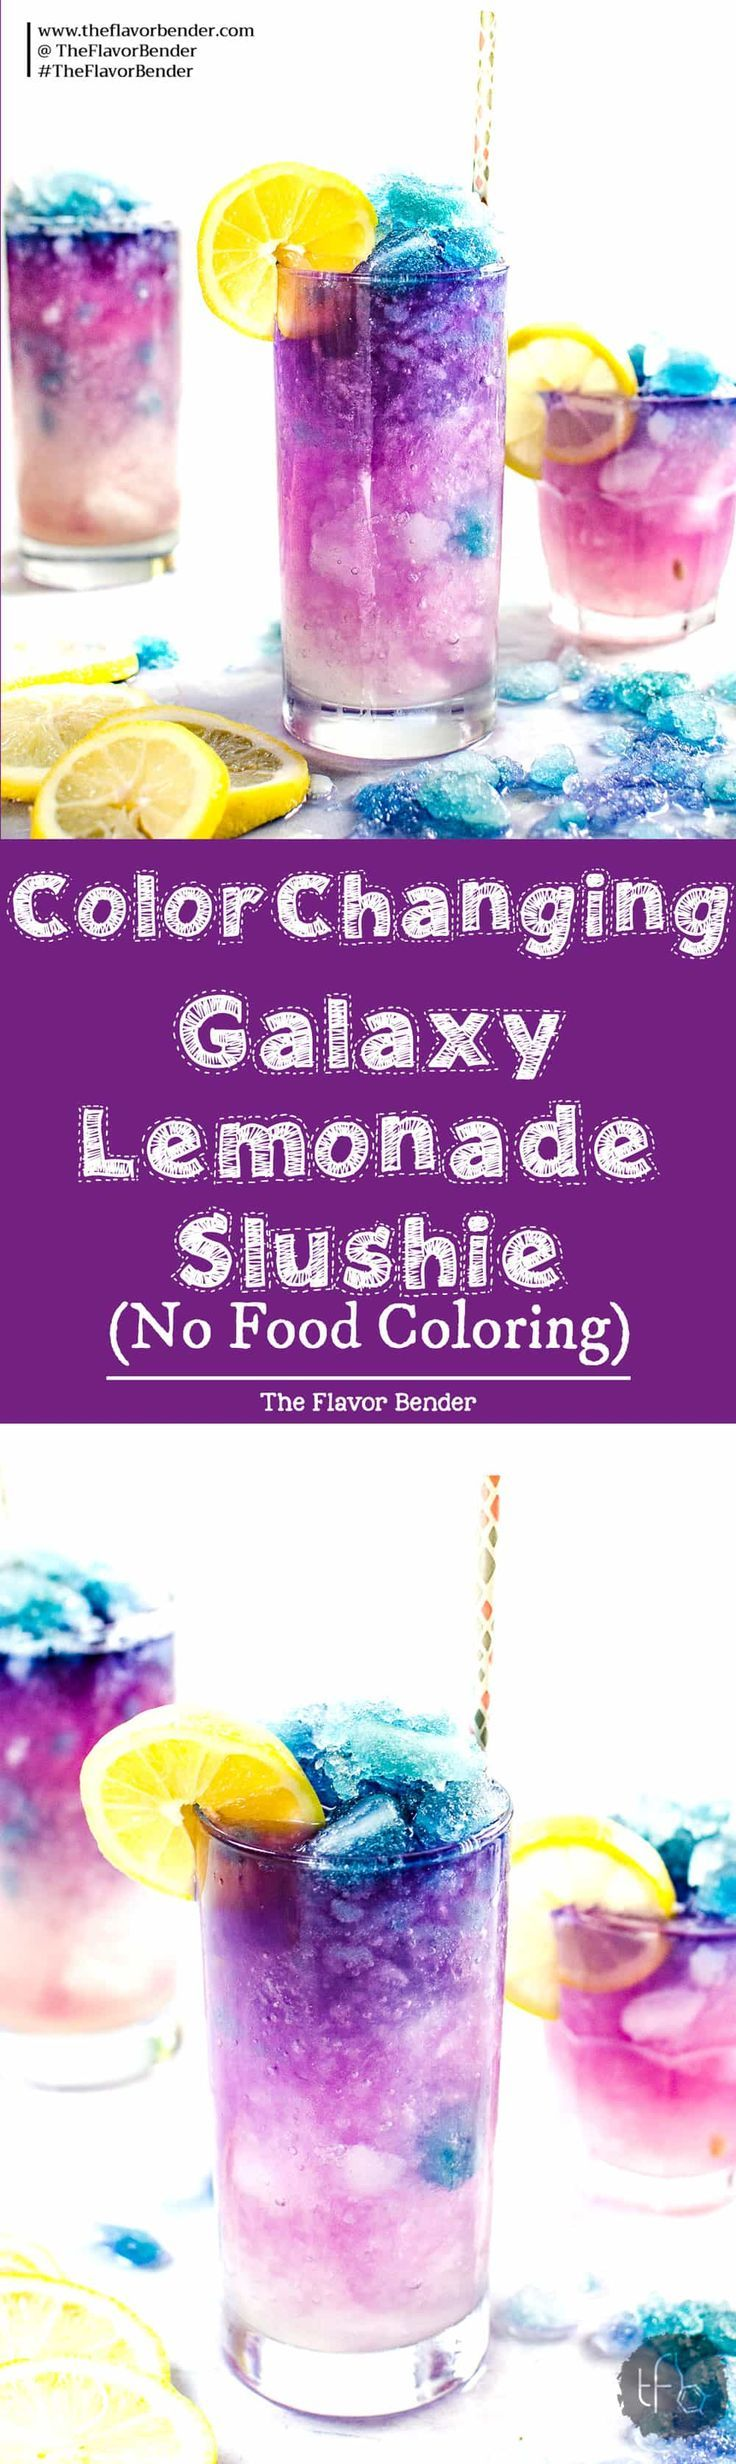 Color Changing Galaxy Lemonade Slushie  There's no food coloring in this Co